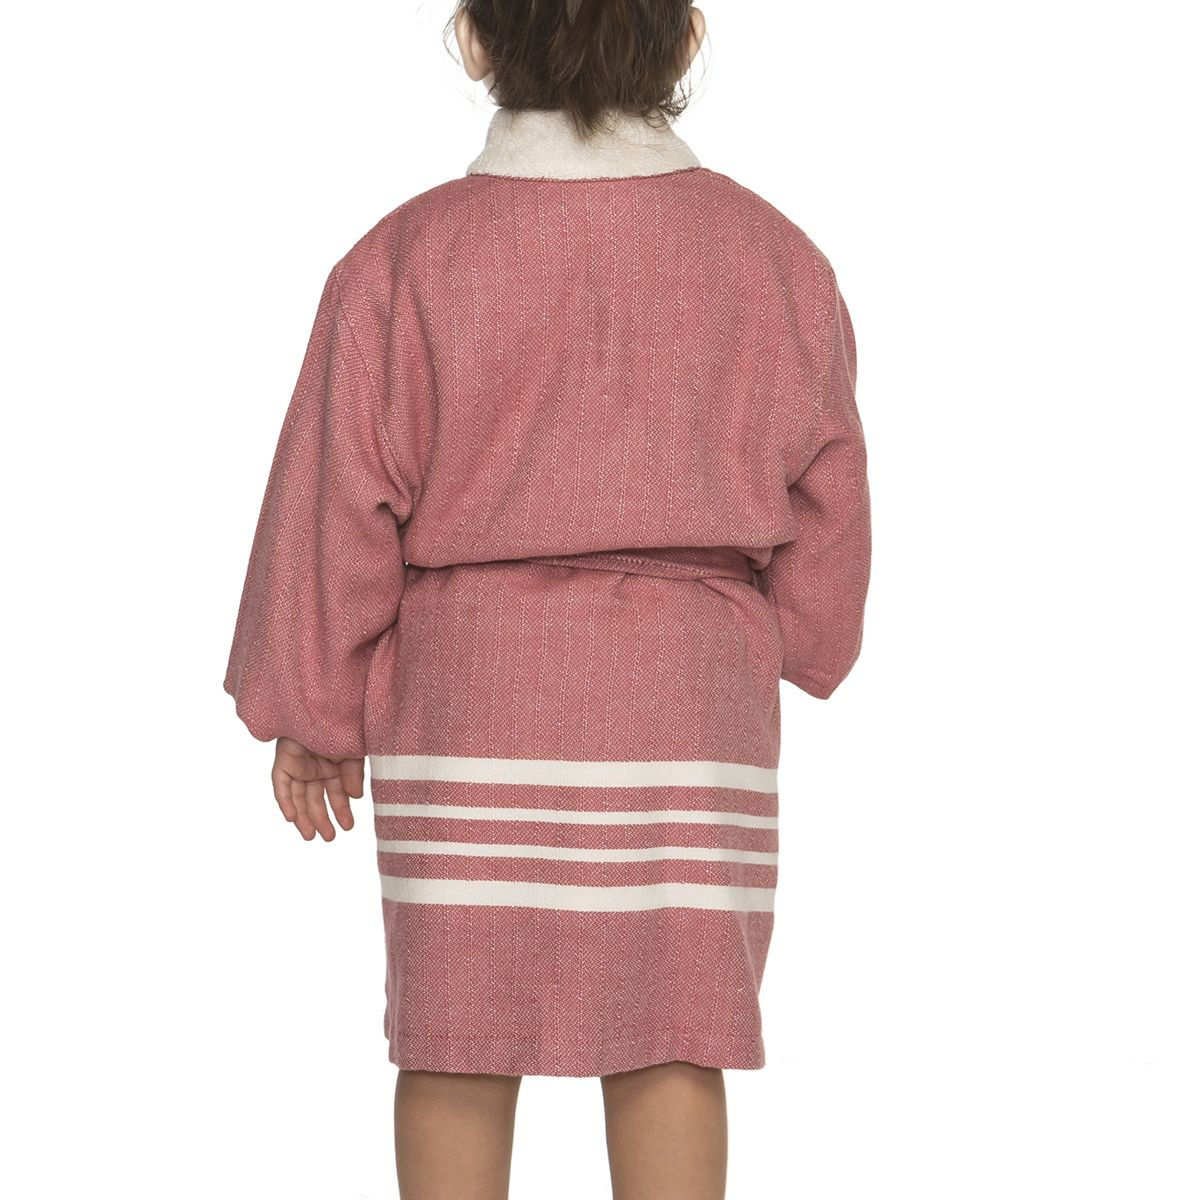 Bathrobe Kiddo Terry - Dusty Rose